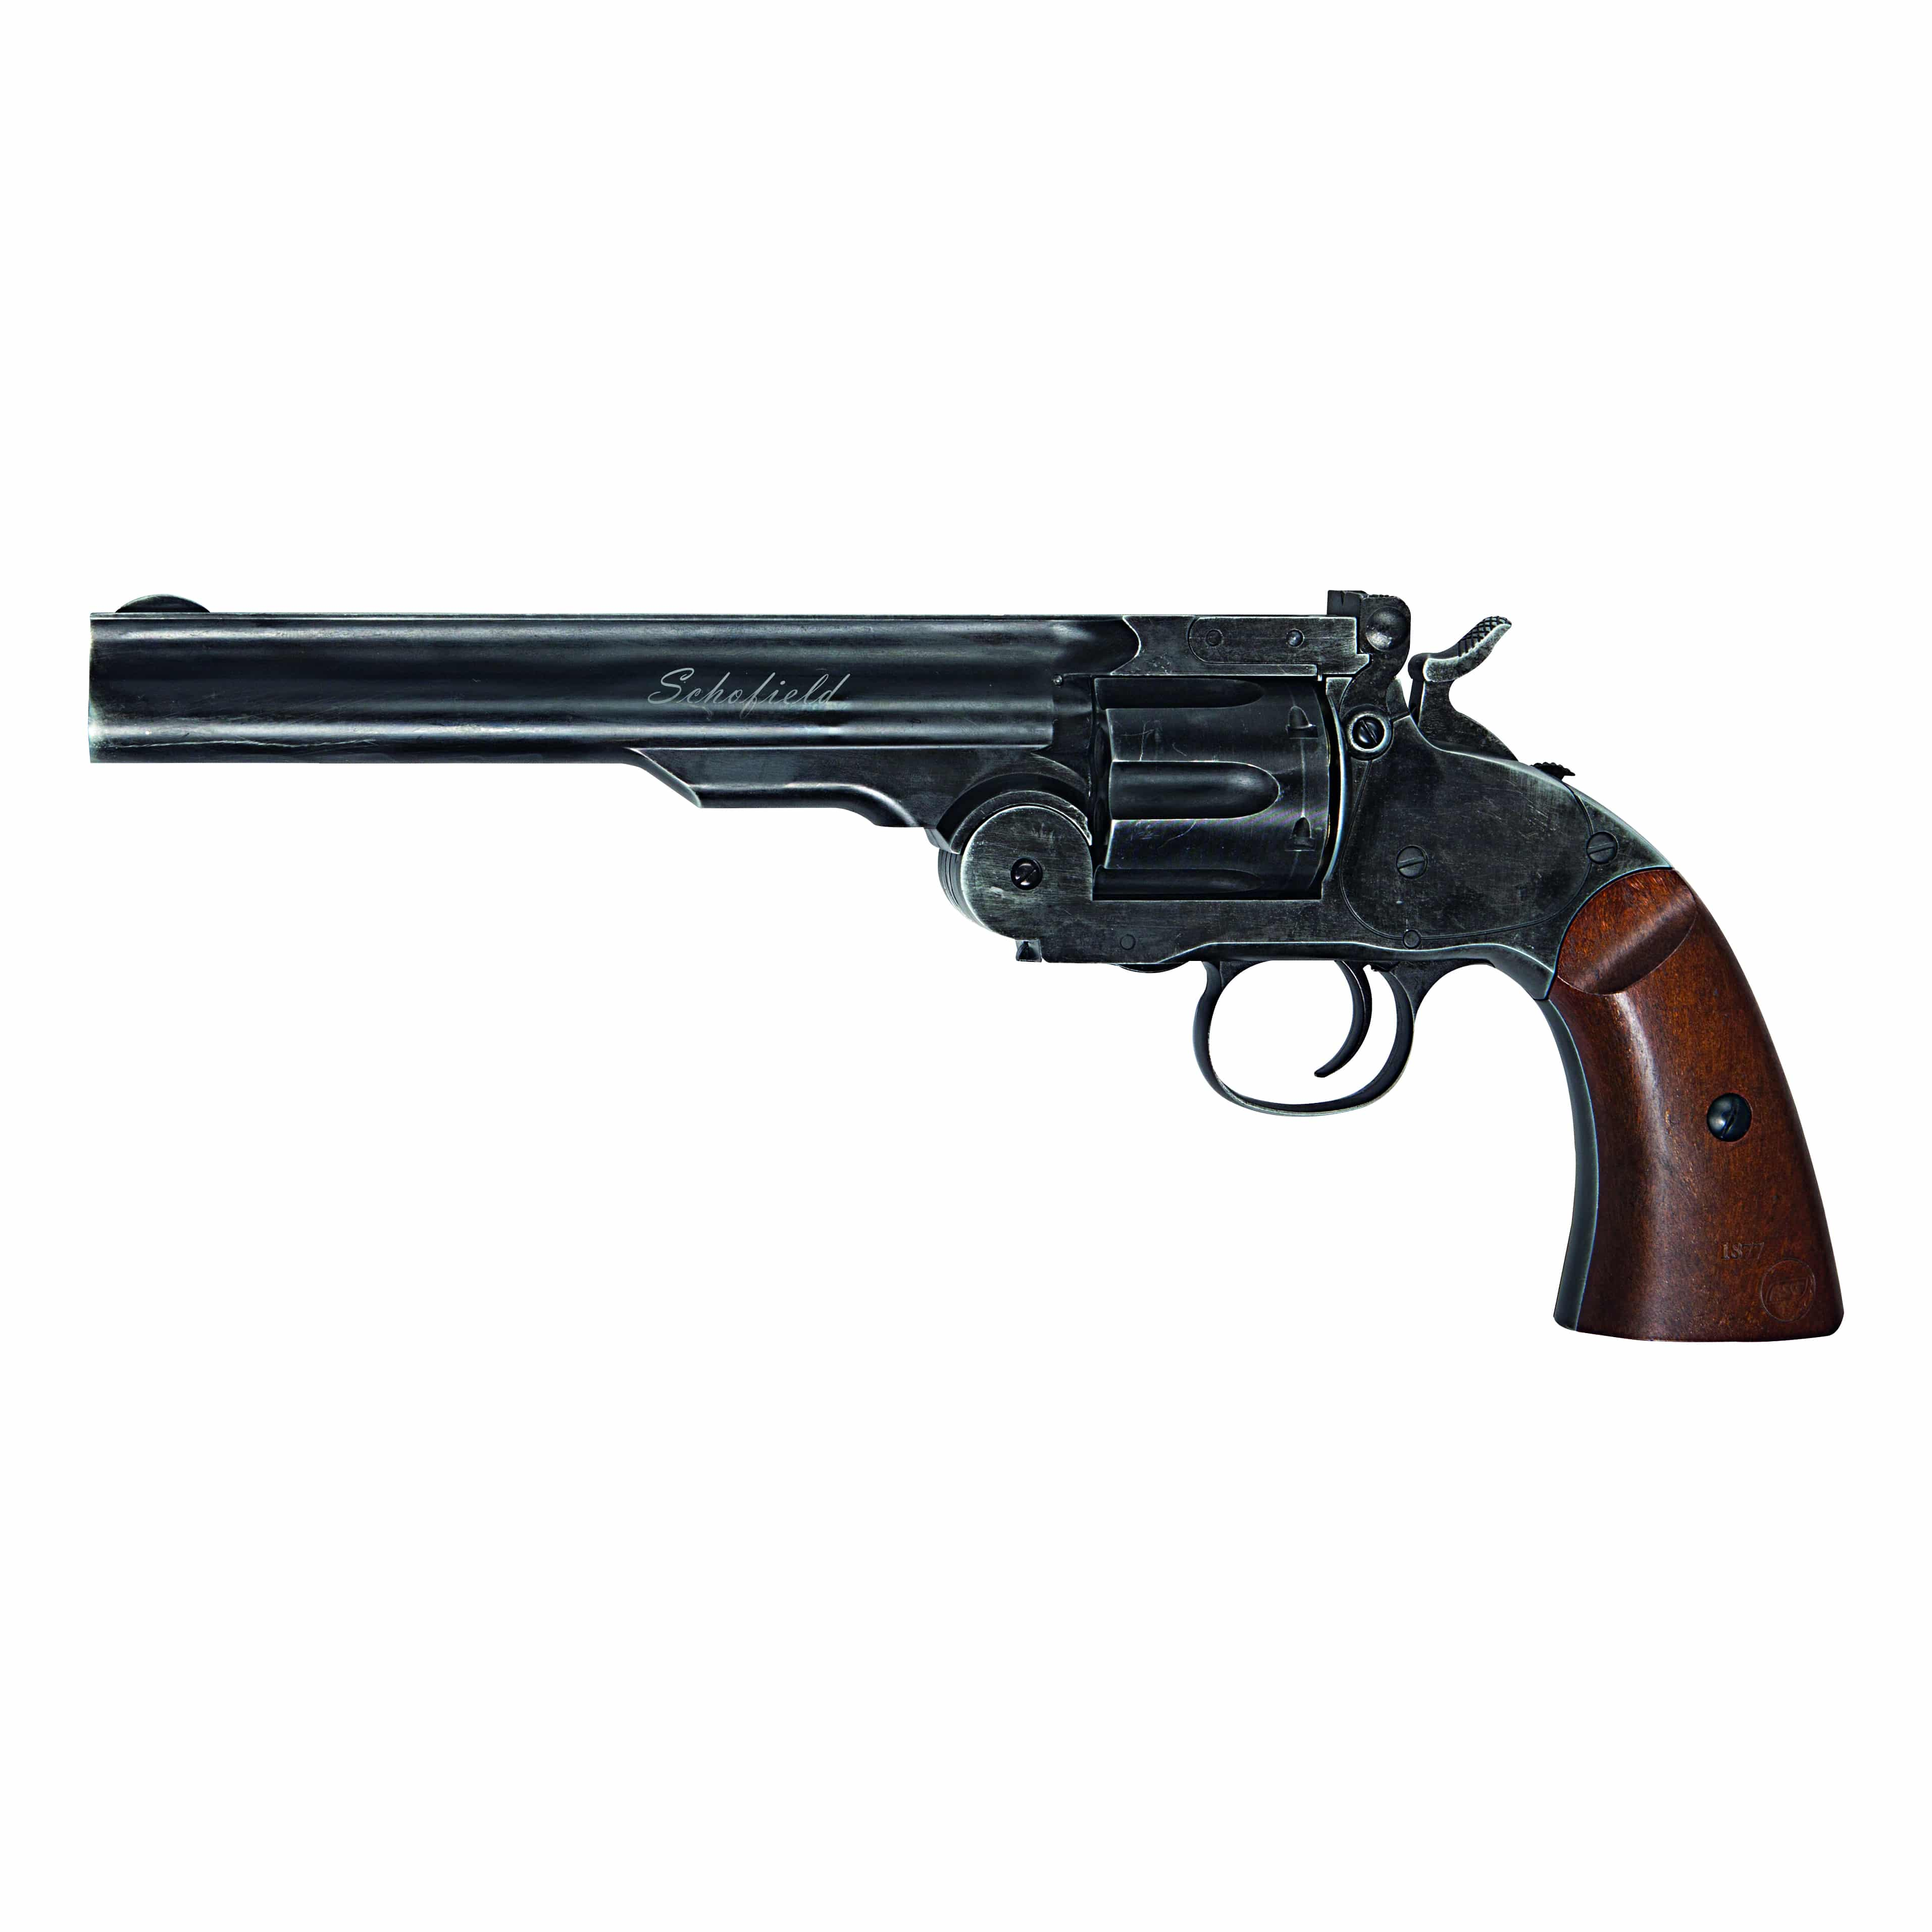 ASG Schofield  177 Pellet Black Aged Finish Co2 Air Pistol